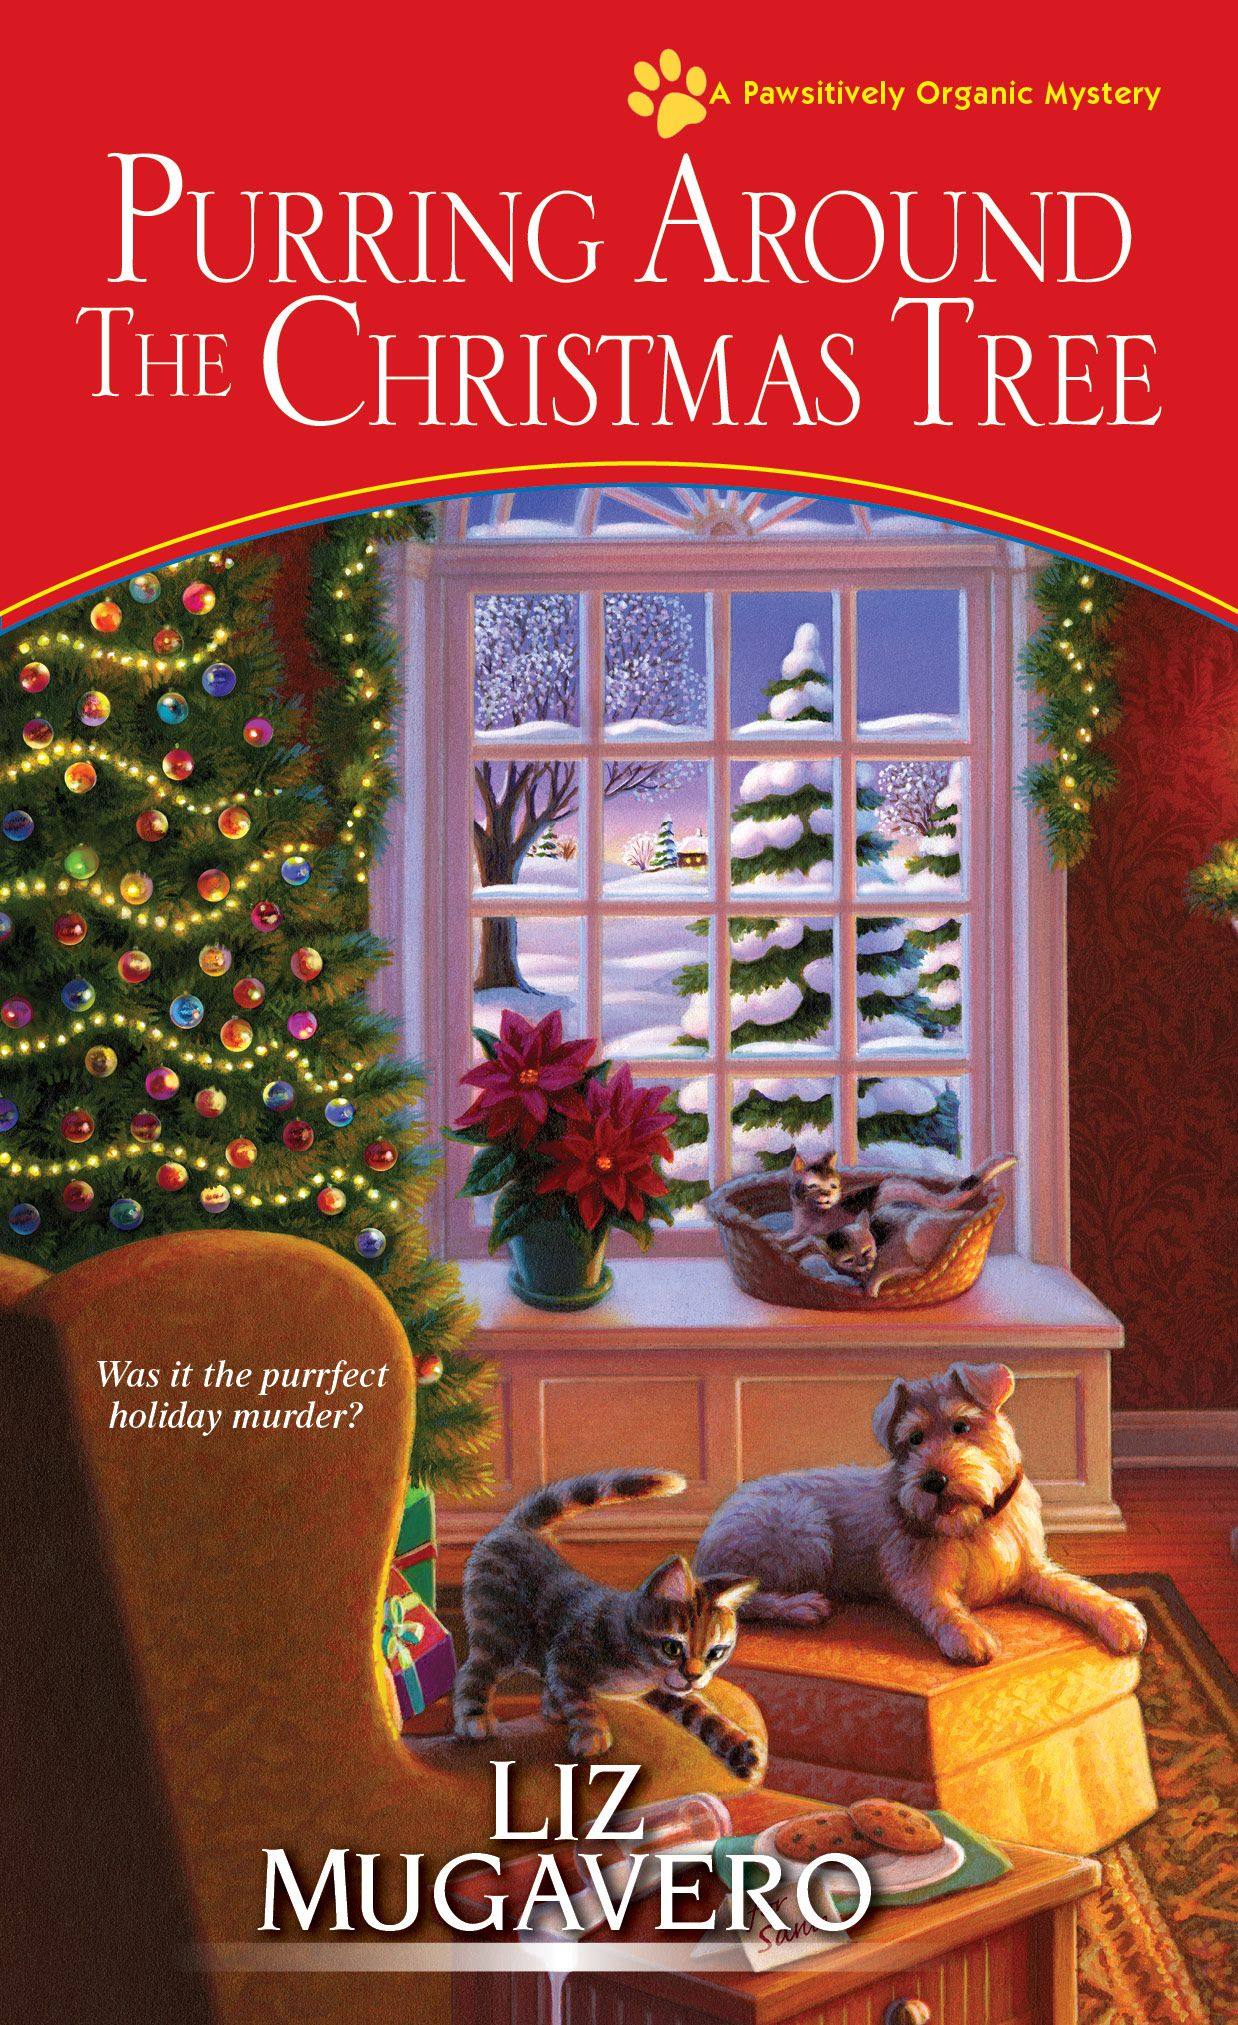 Purring Around the Christmas Tree Book 6 in the